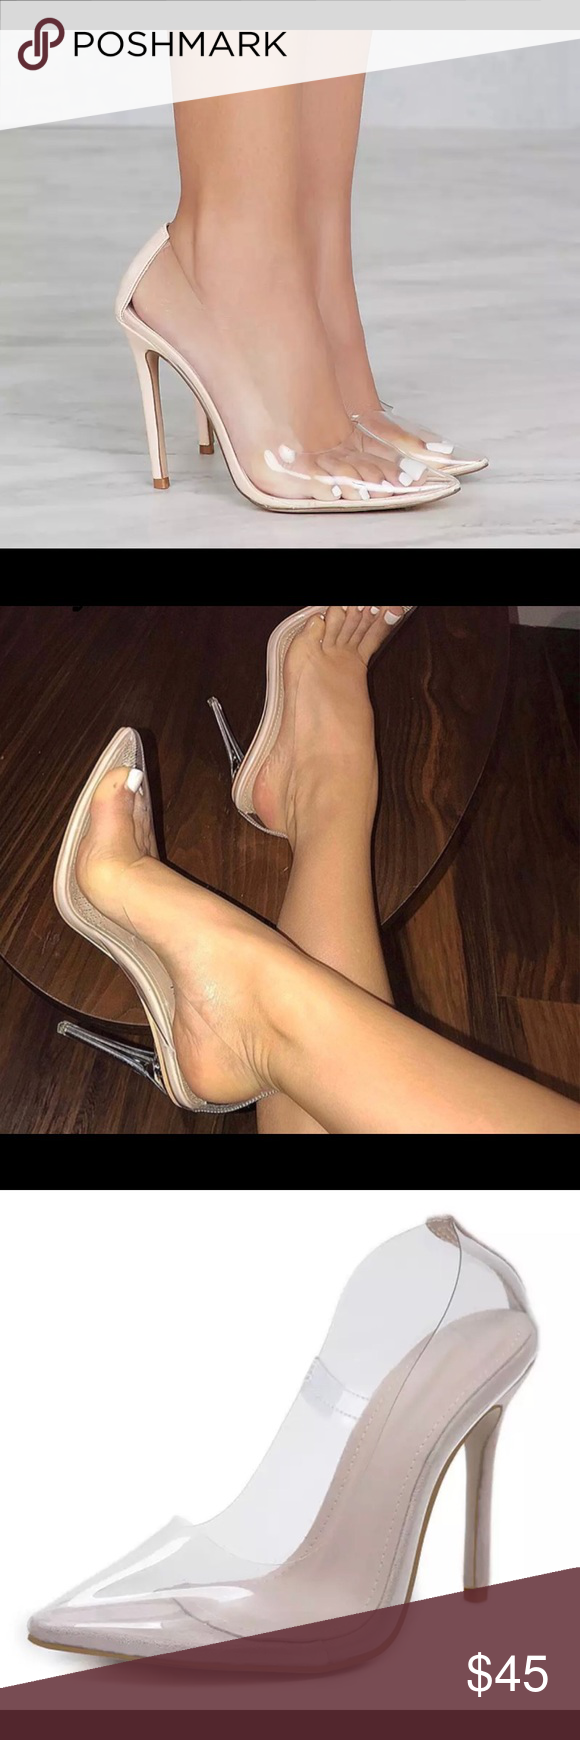 d87b16bd5208 ️SIGN UP ‼ Clear Cinderella Stiletto Pumps  Like this listing so you will